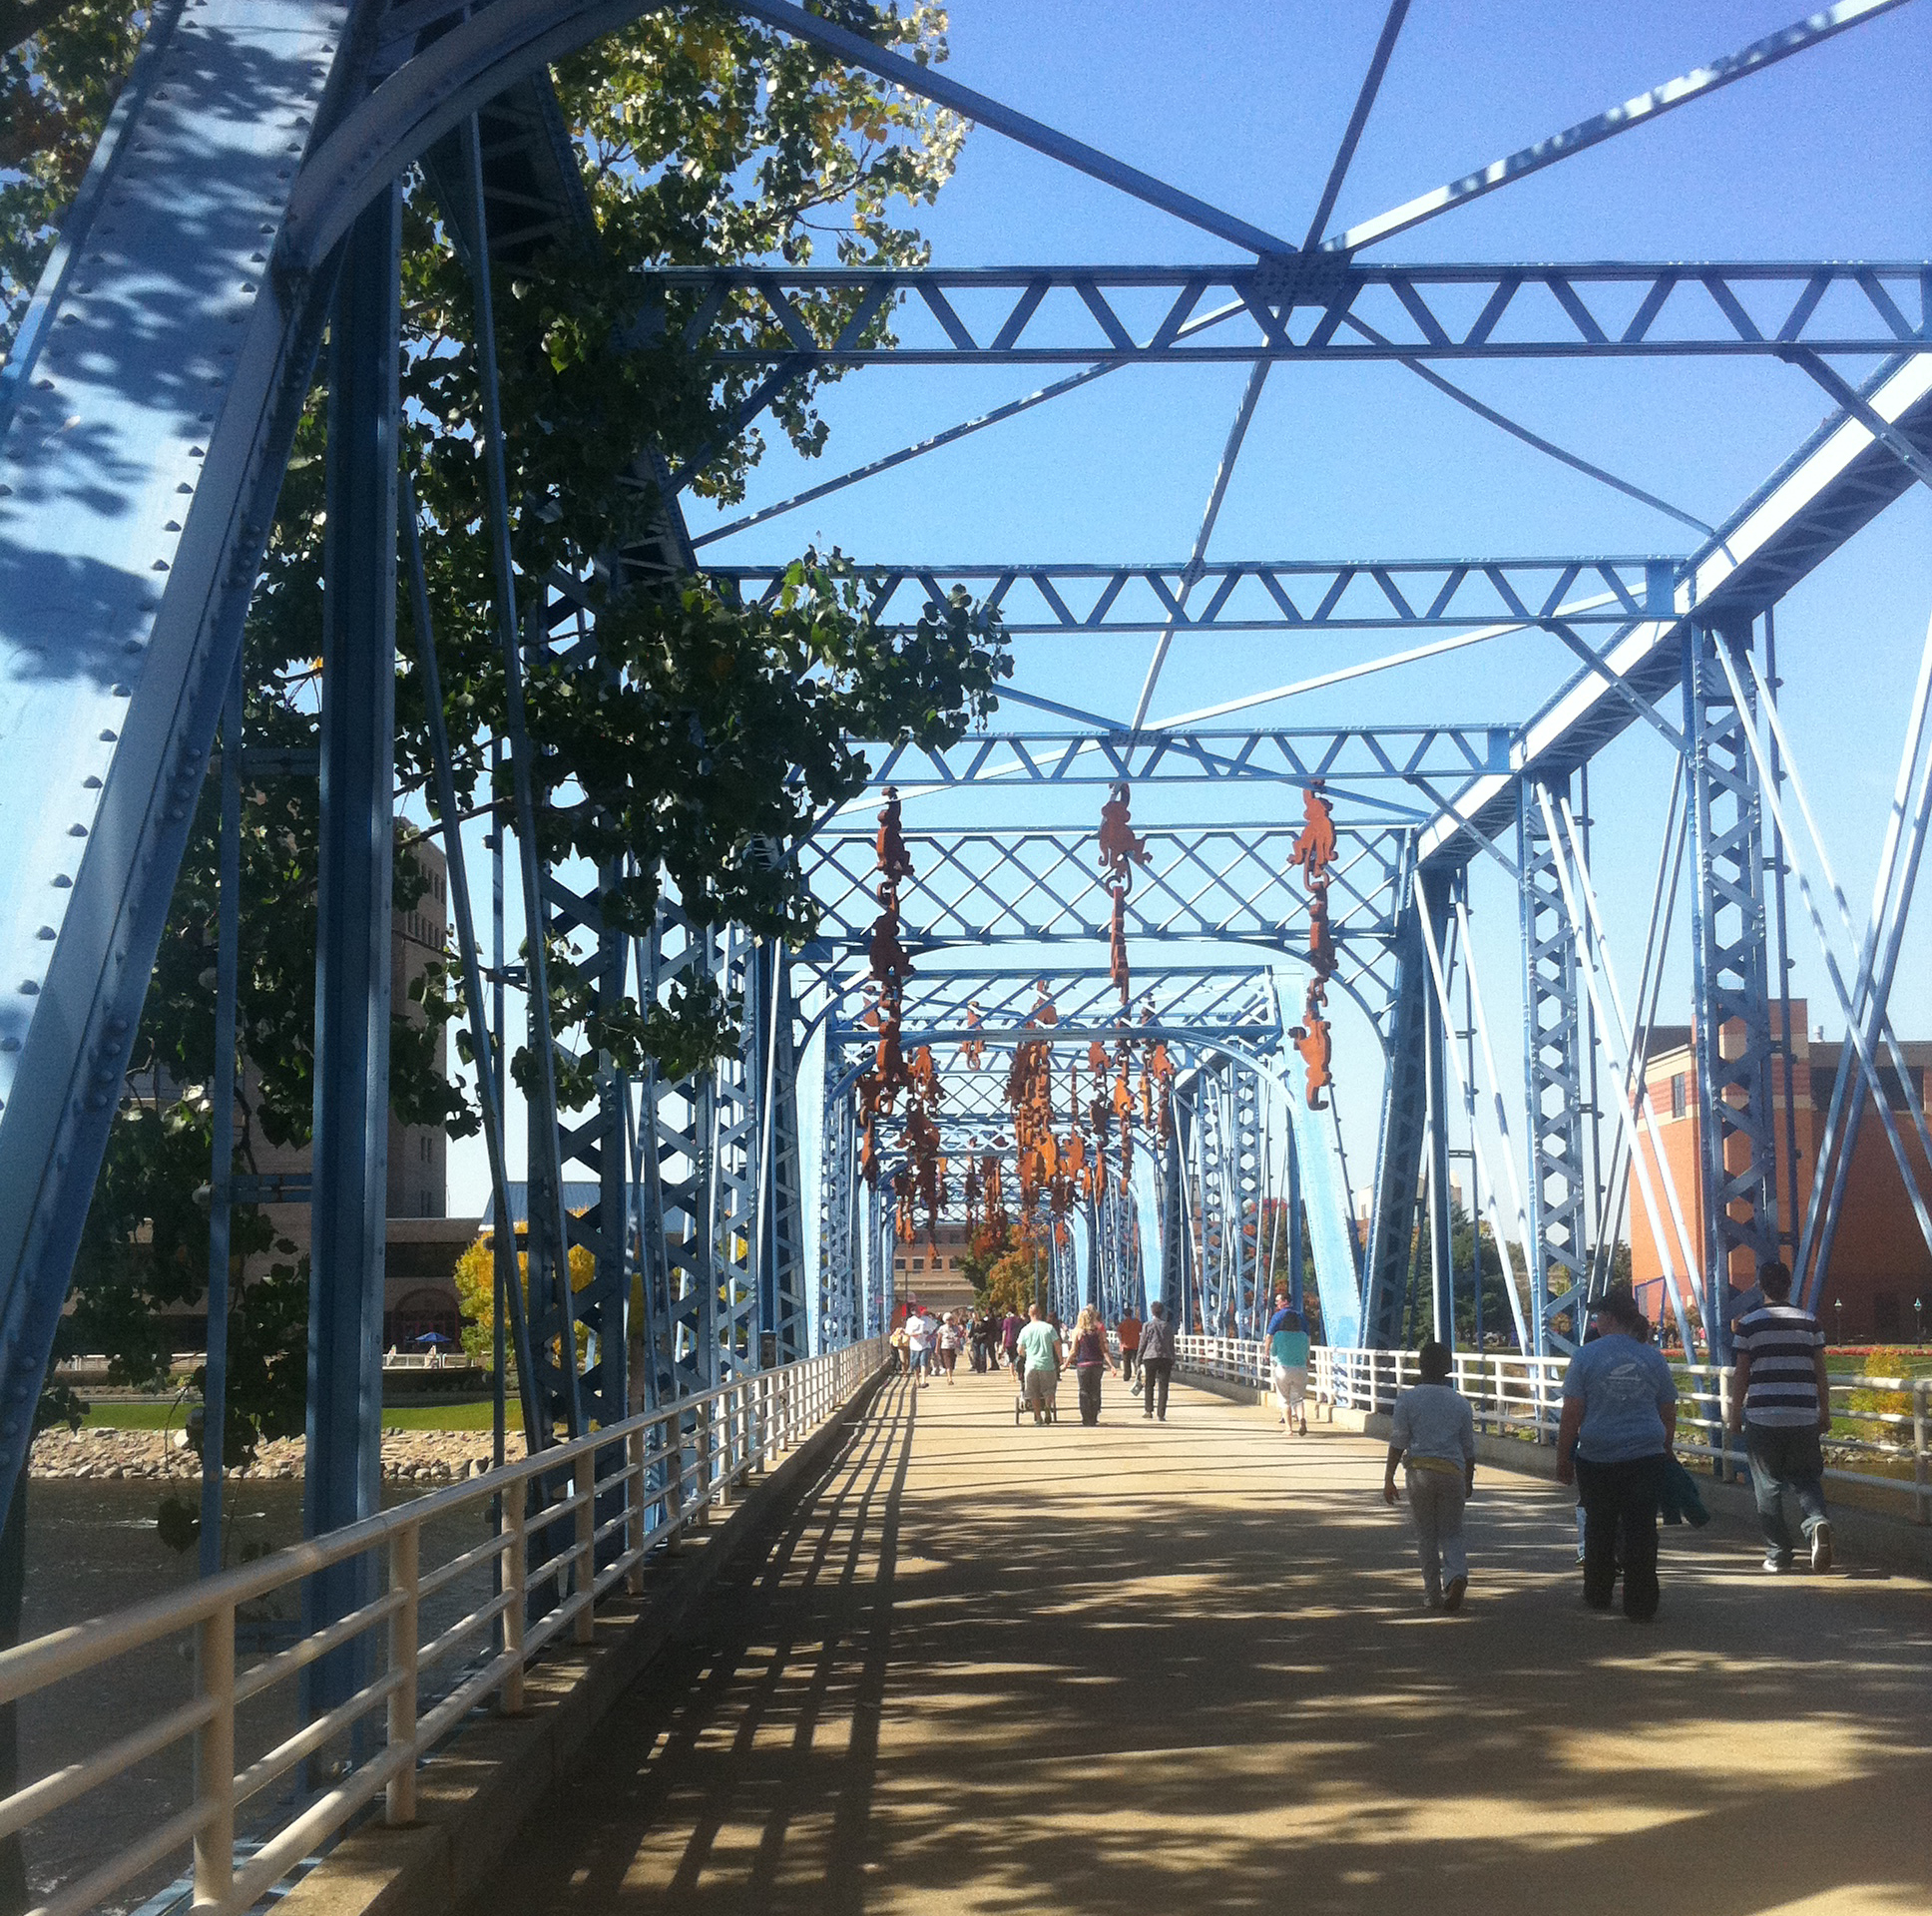 The so-called Blue Bridge is a railroad trestle converted to a pedestrian bridge connecting the Pew campus of Grand Valley State University with the city&#039;s central business district. As in year&#039;s past, the featured work wasn&#039;t particularly engaging, but at least the walk over the river was undeniably pleasant.